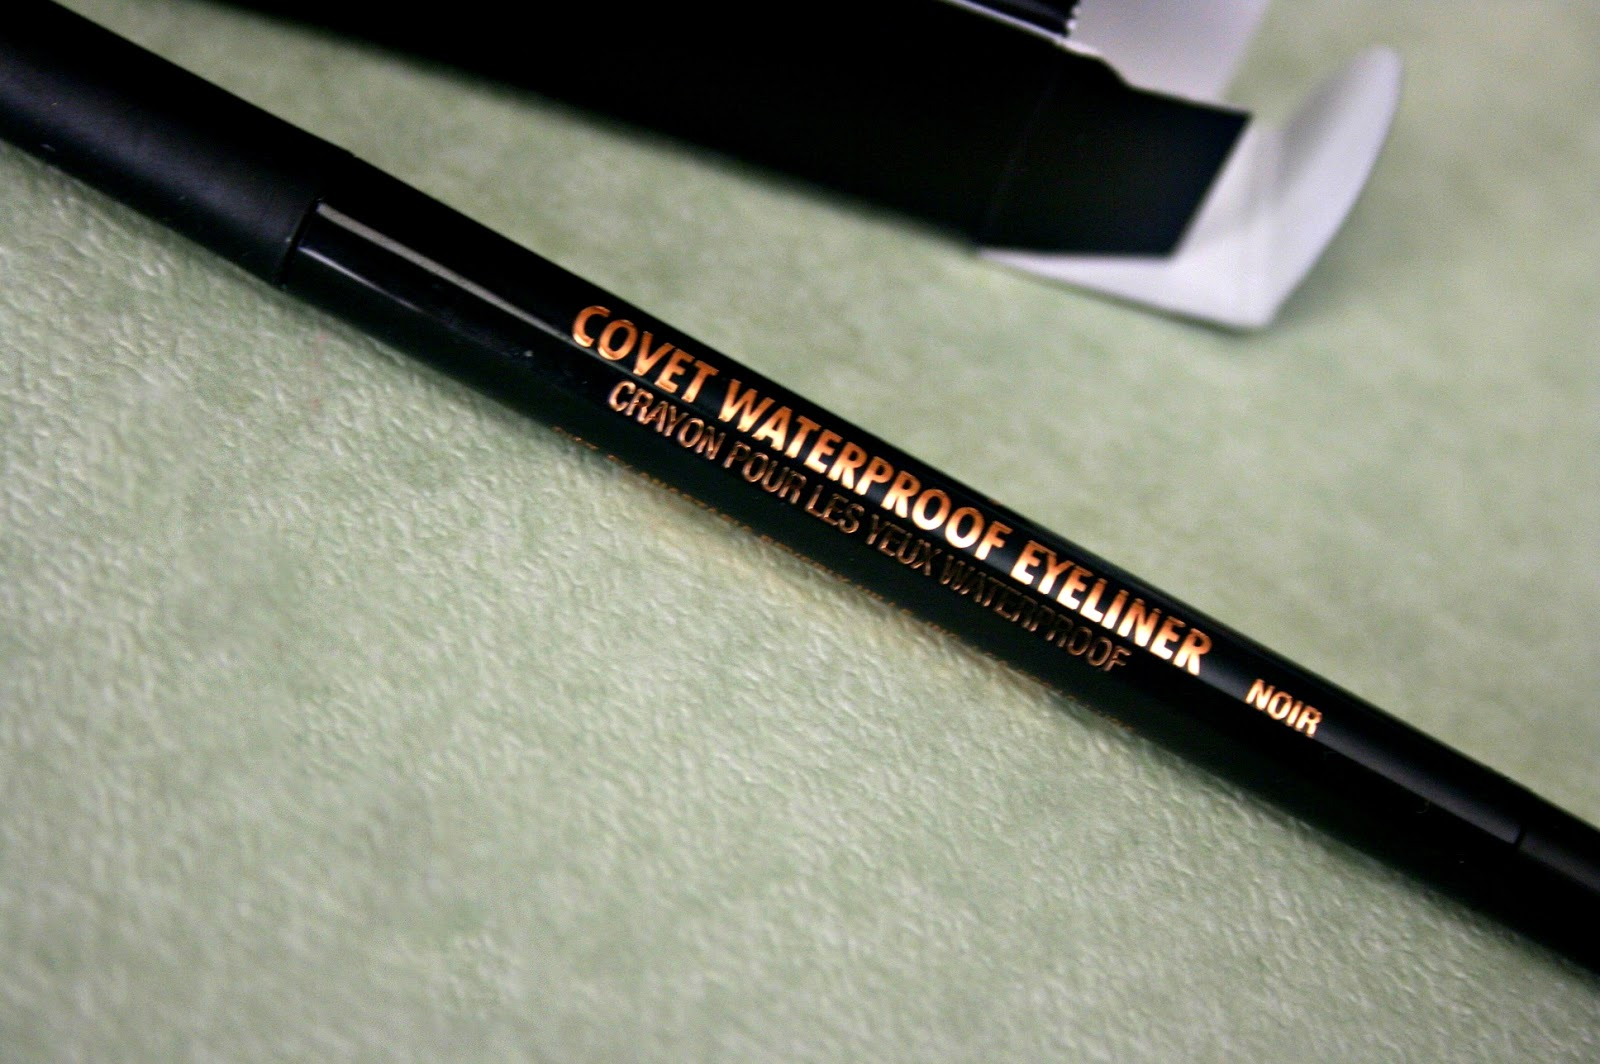 Anastasia Covet Waterproof Eyeliner in Noir